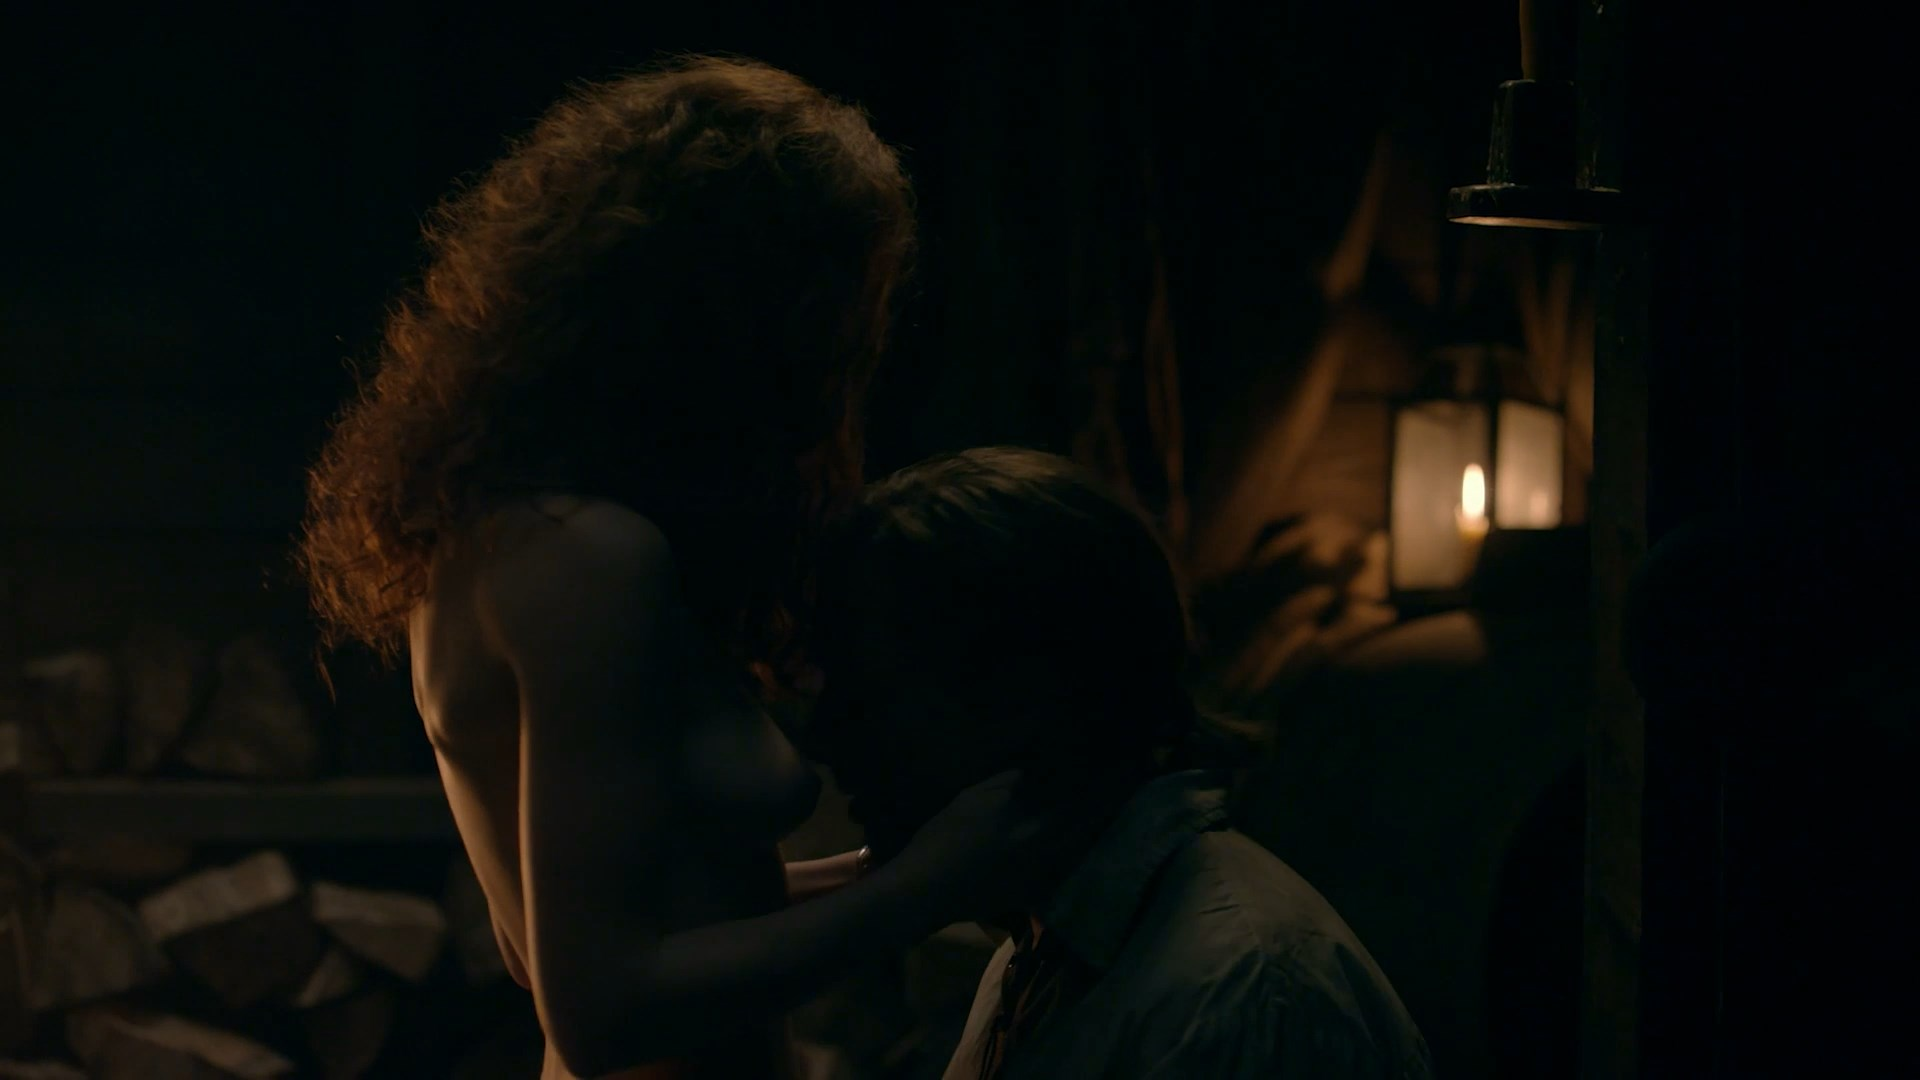 Nude video celebs » Sophie Skelton nude - Outlander s04e08 ...